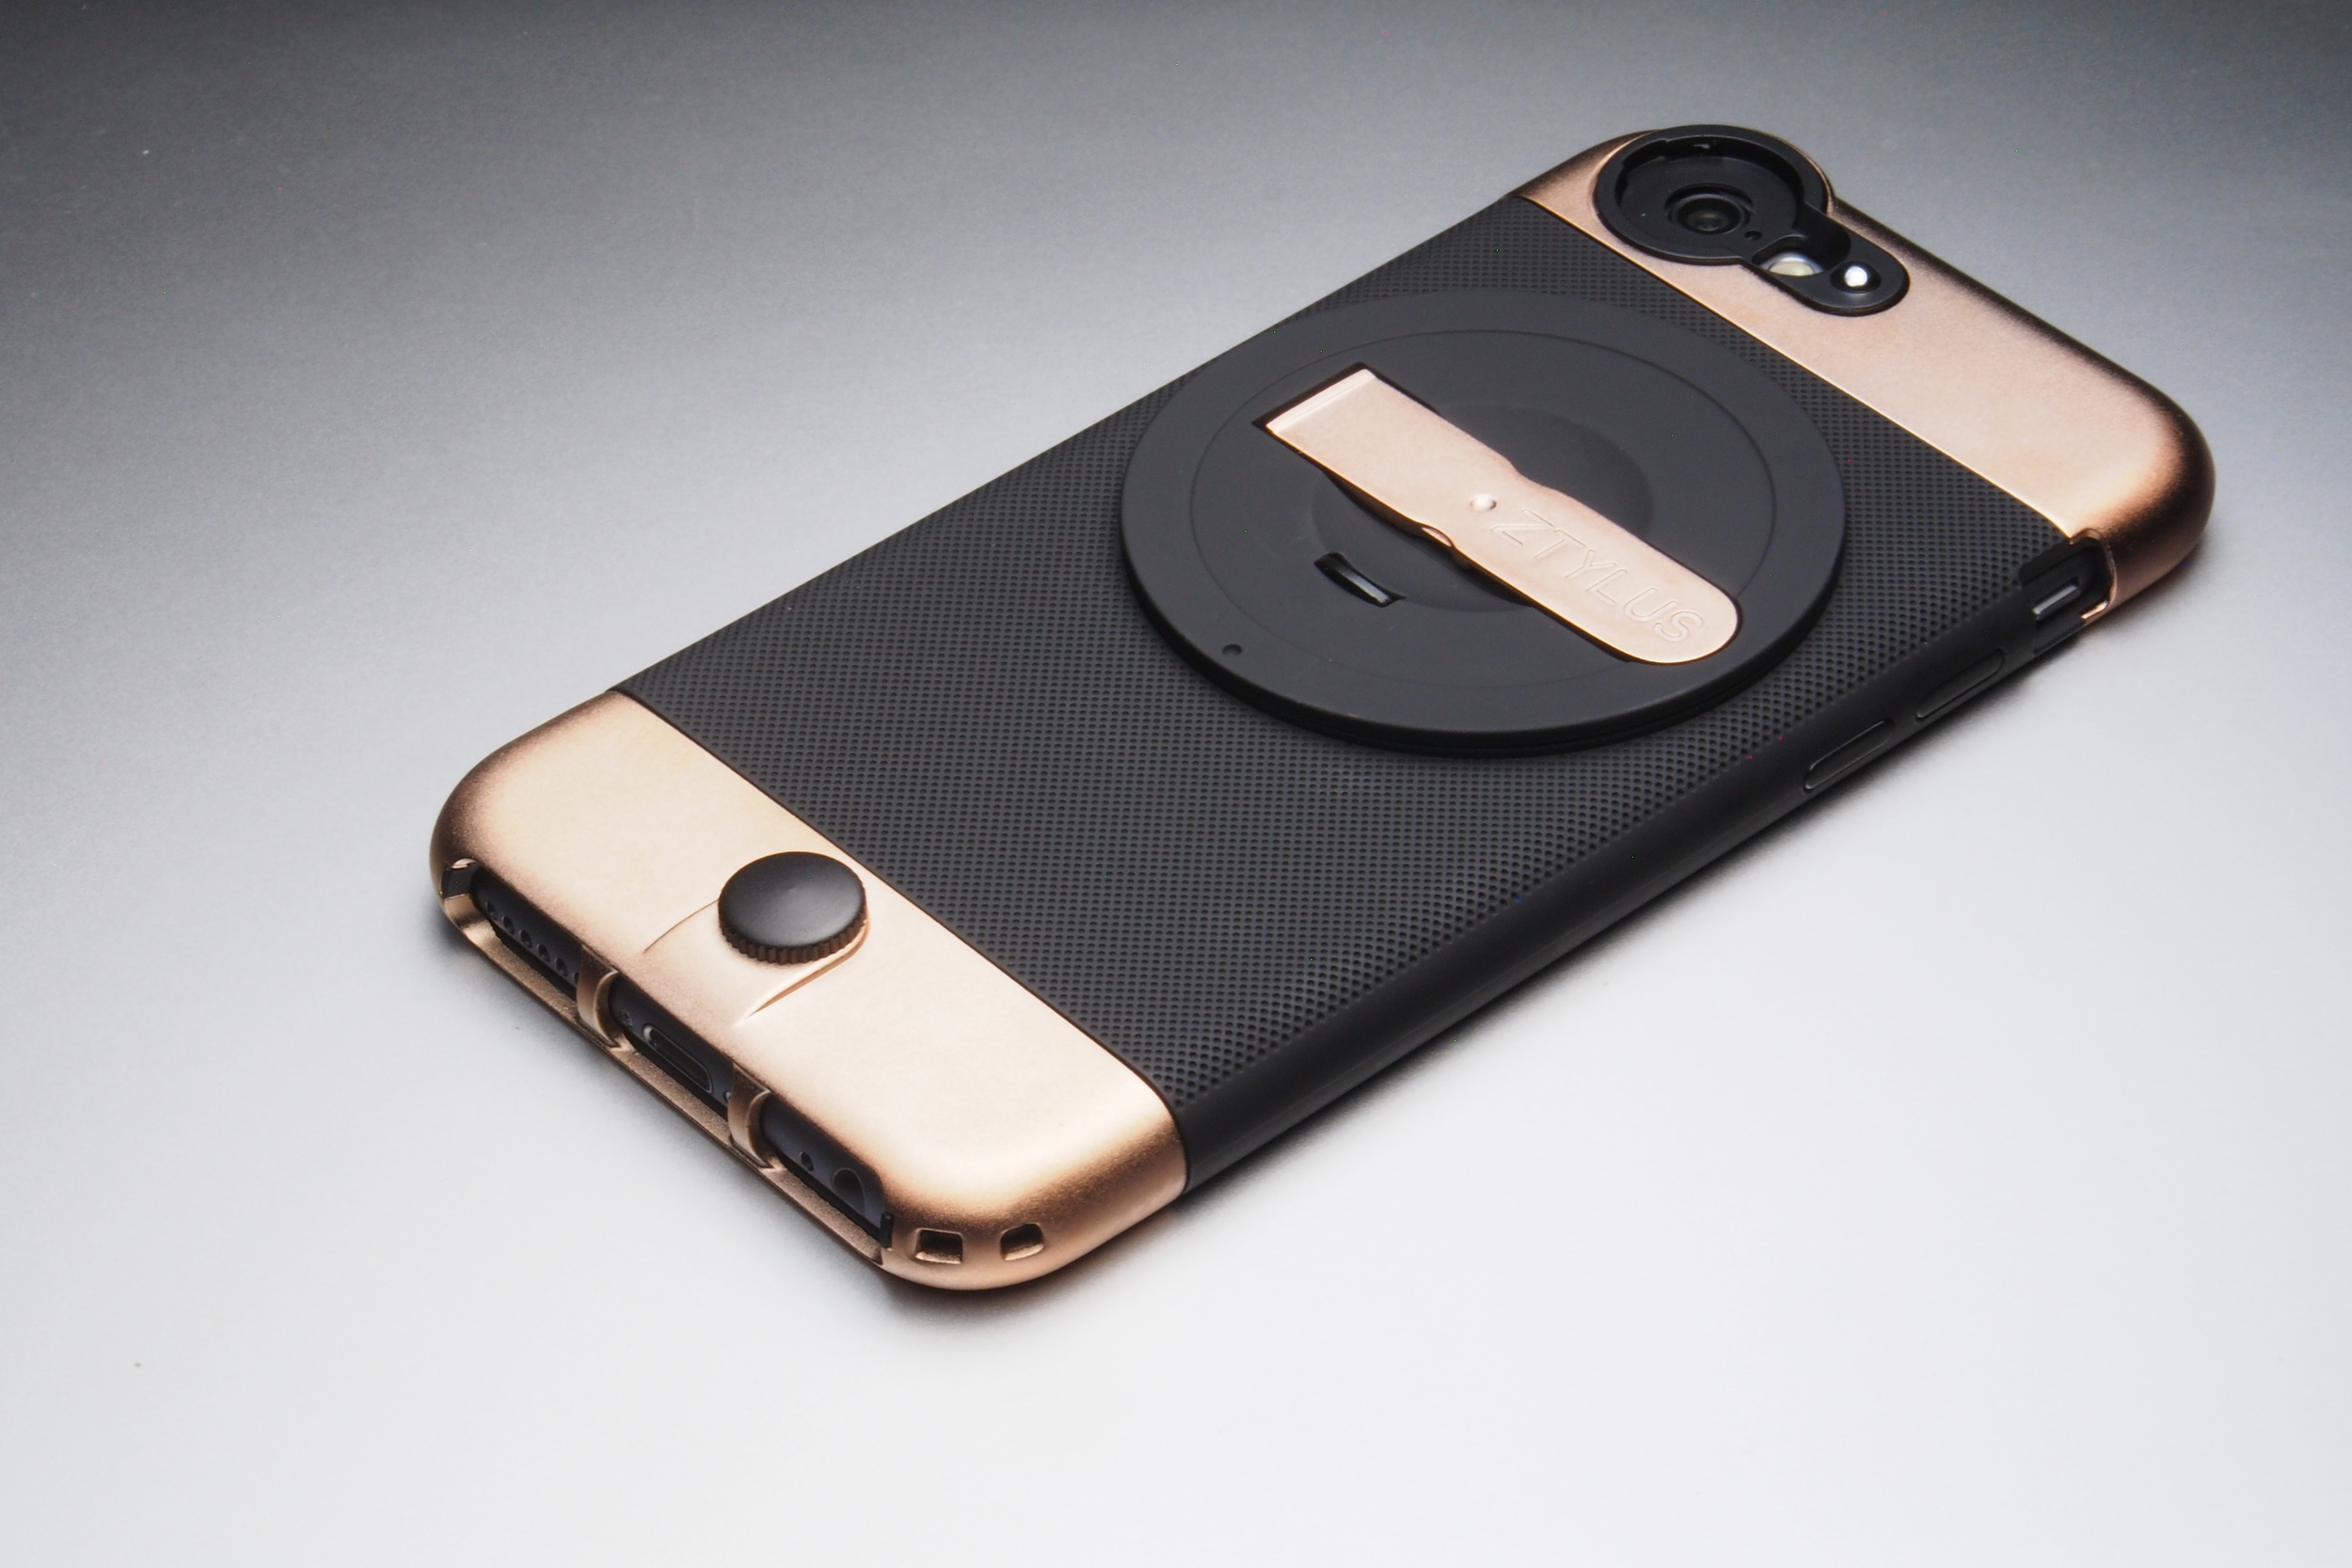 ZTYLUS Rose Gold Case.JPG